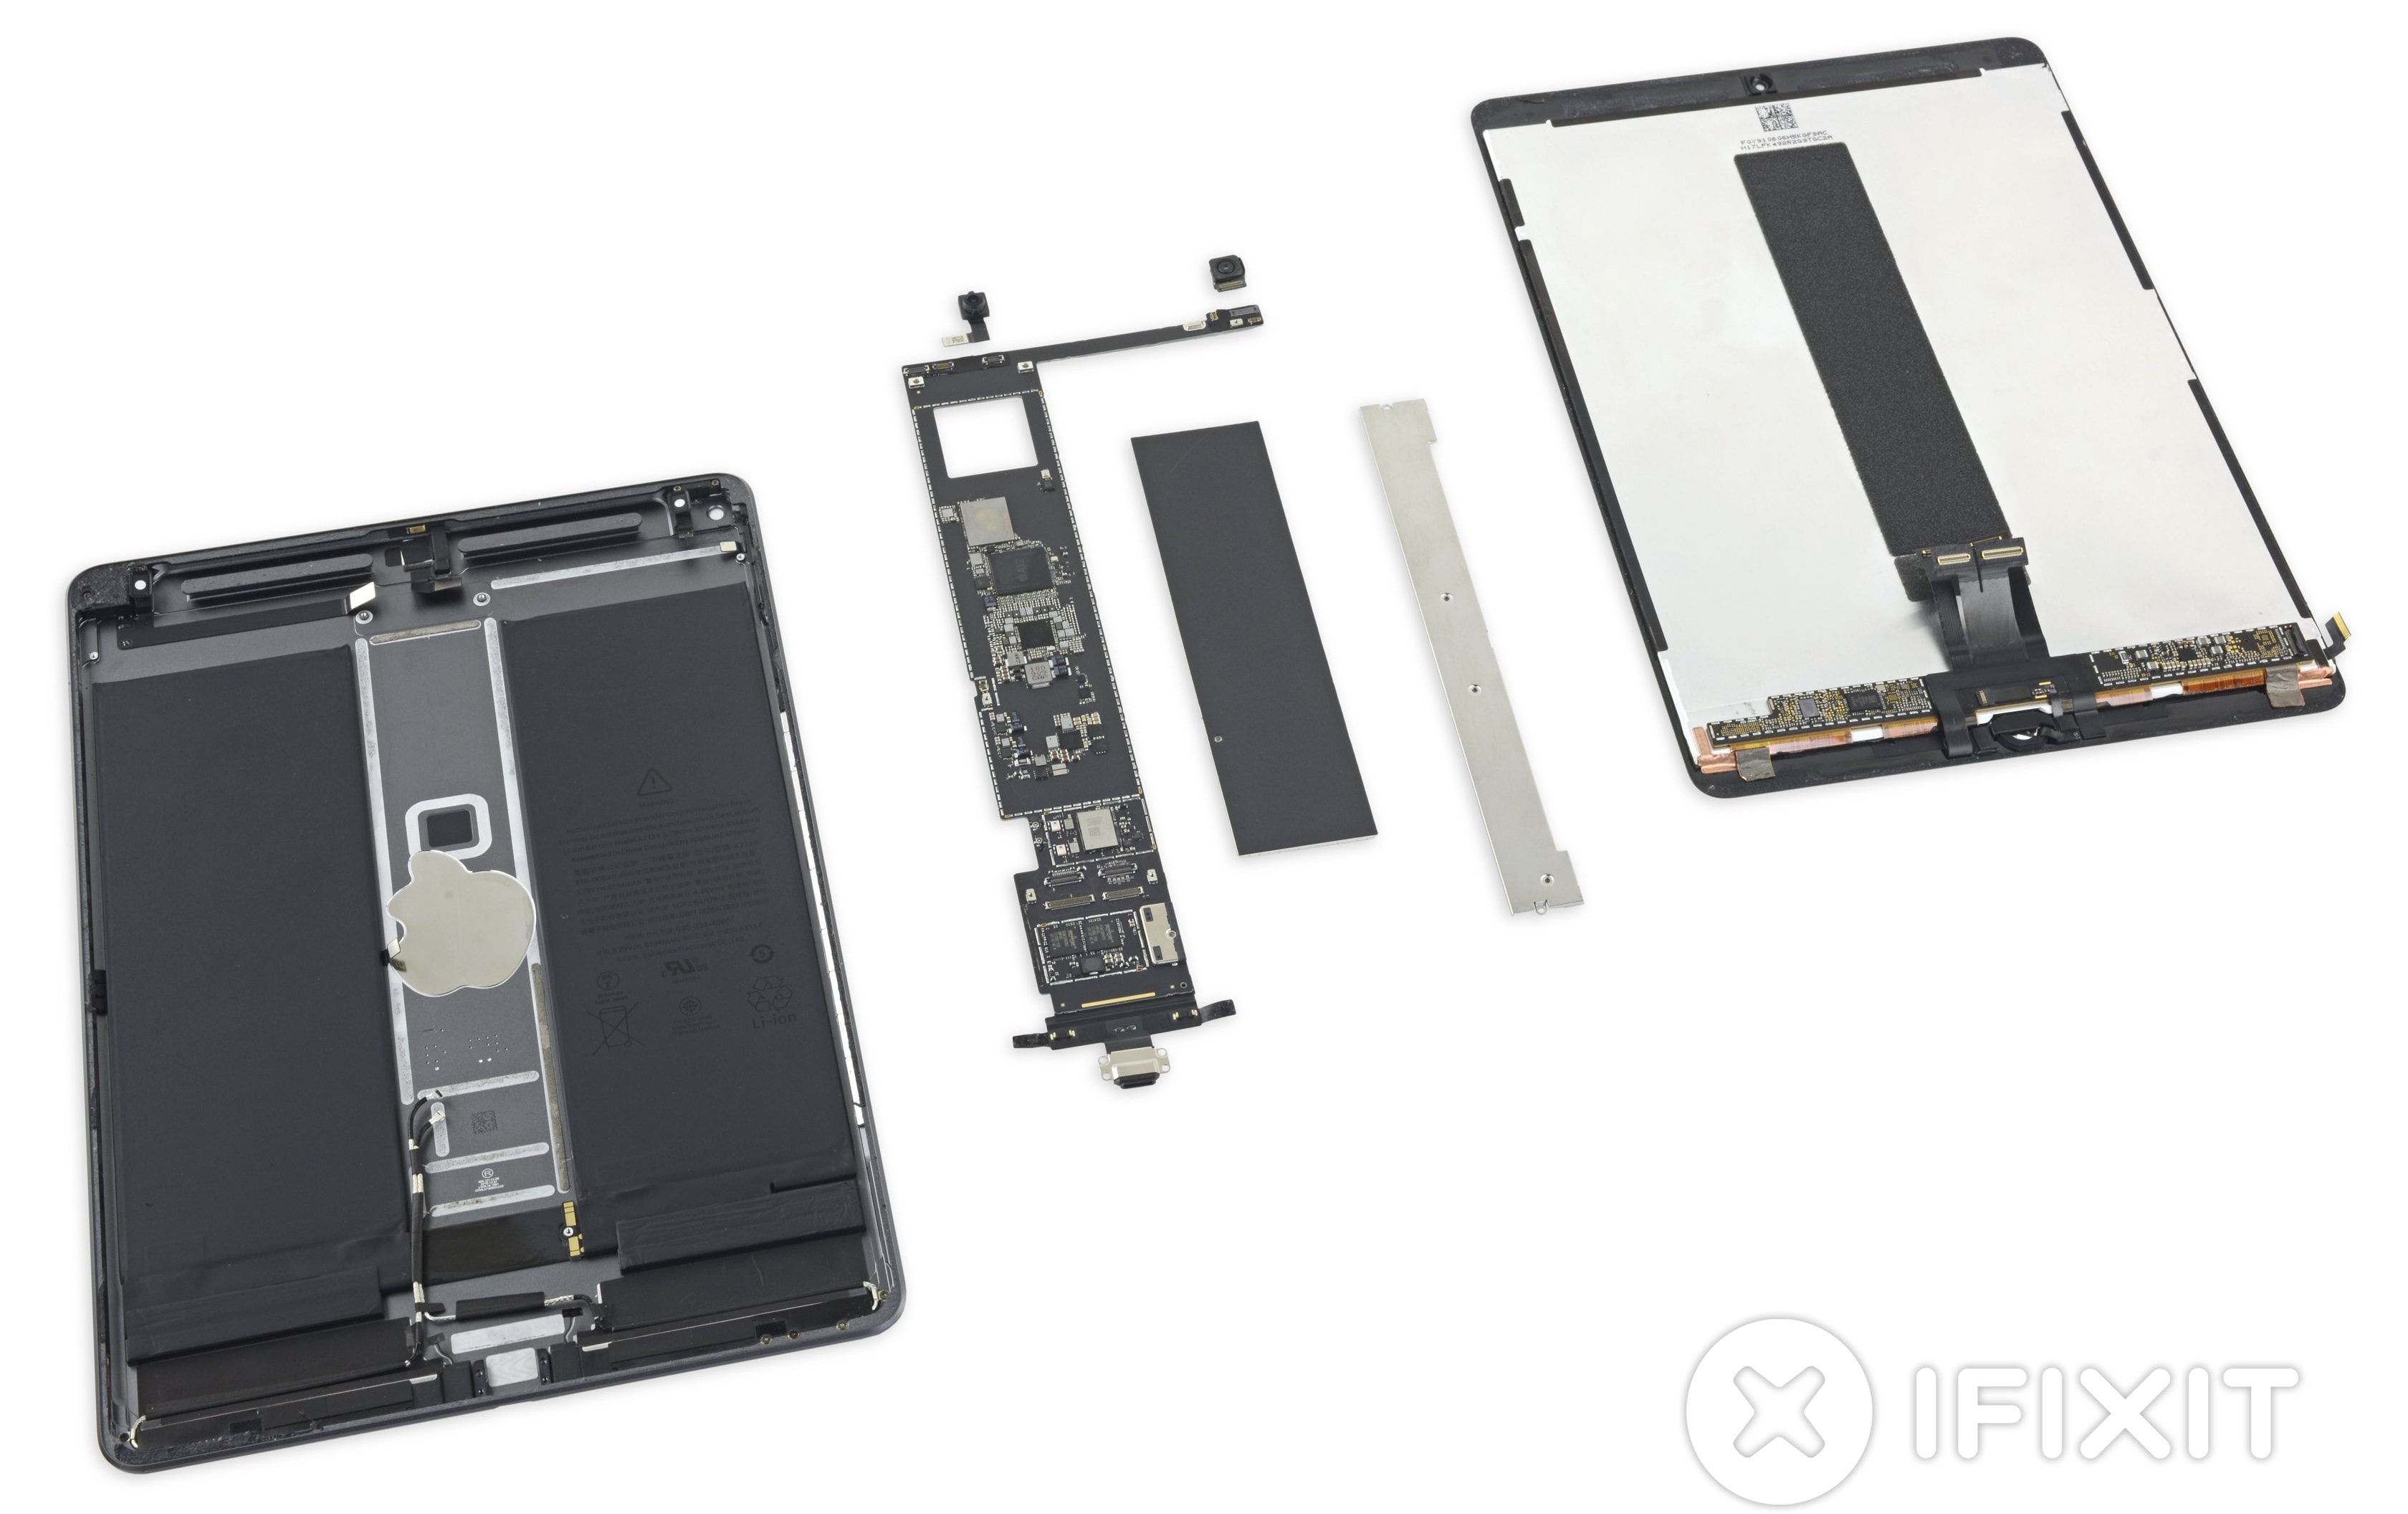 iPad Air 3 teardown